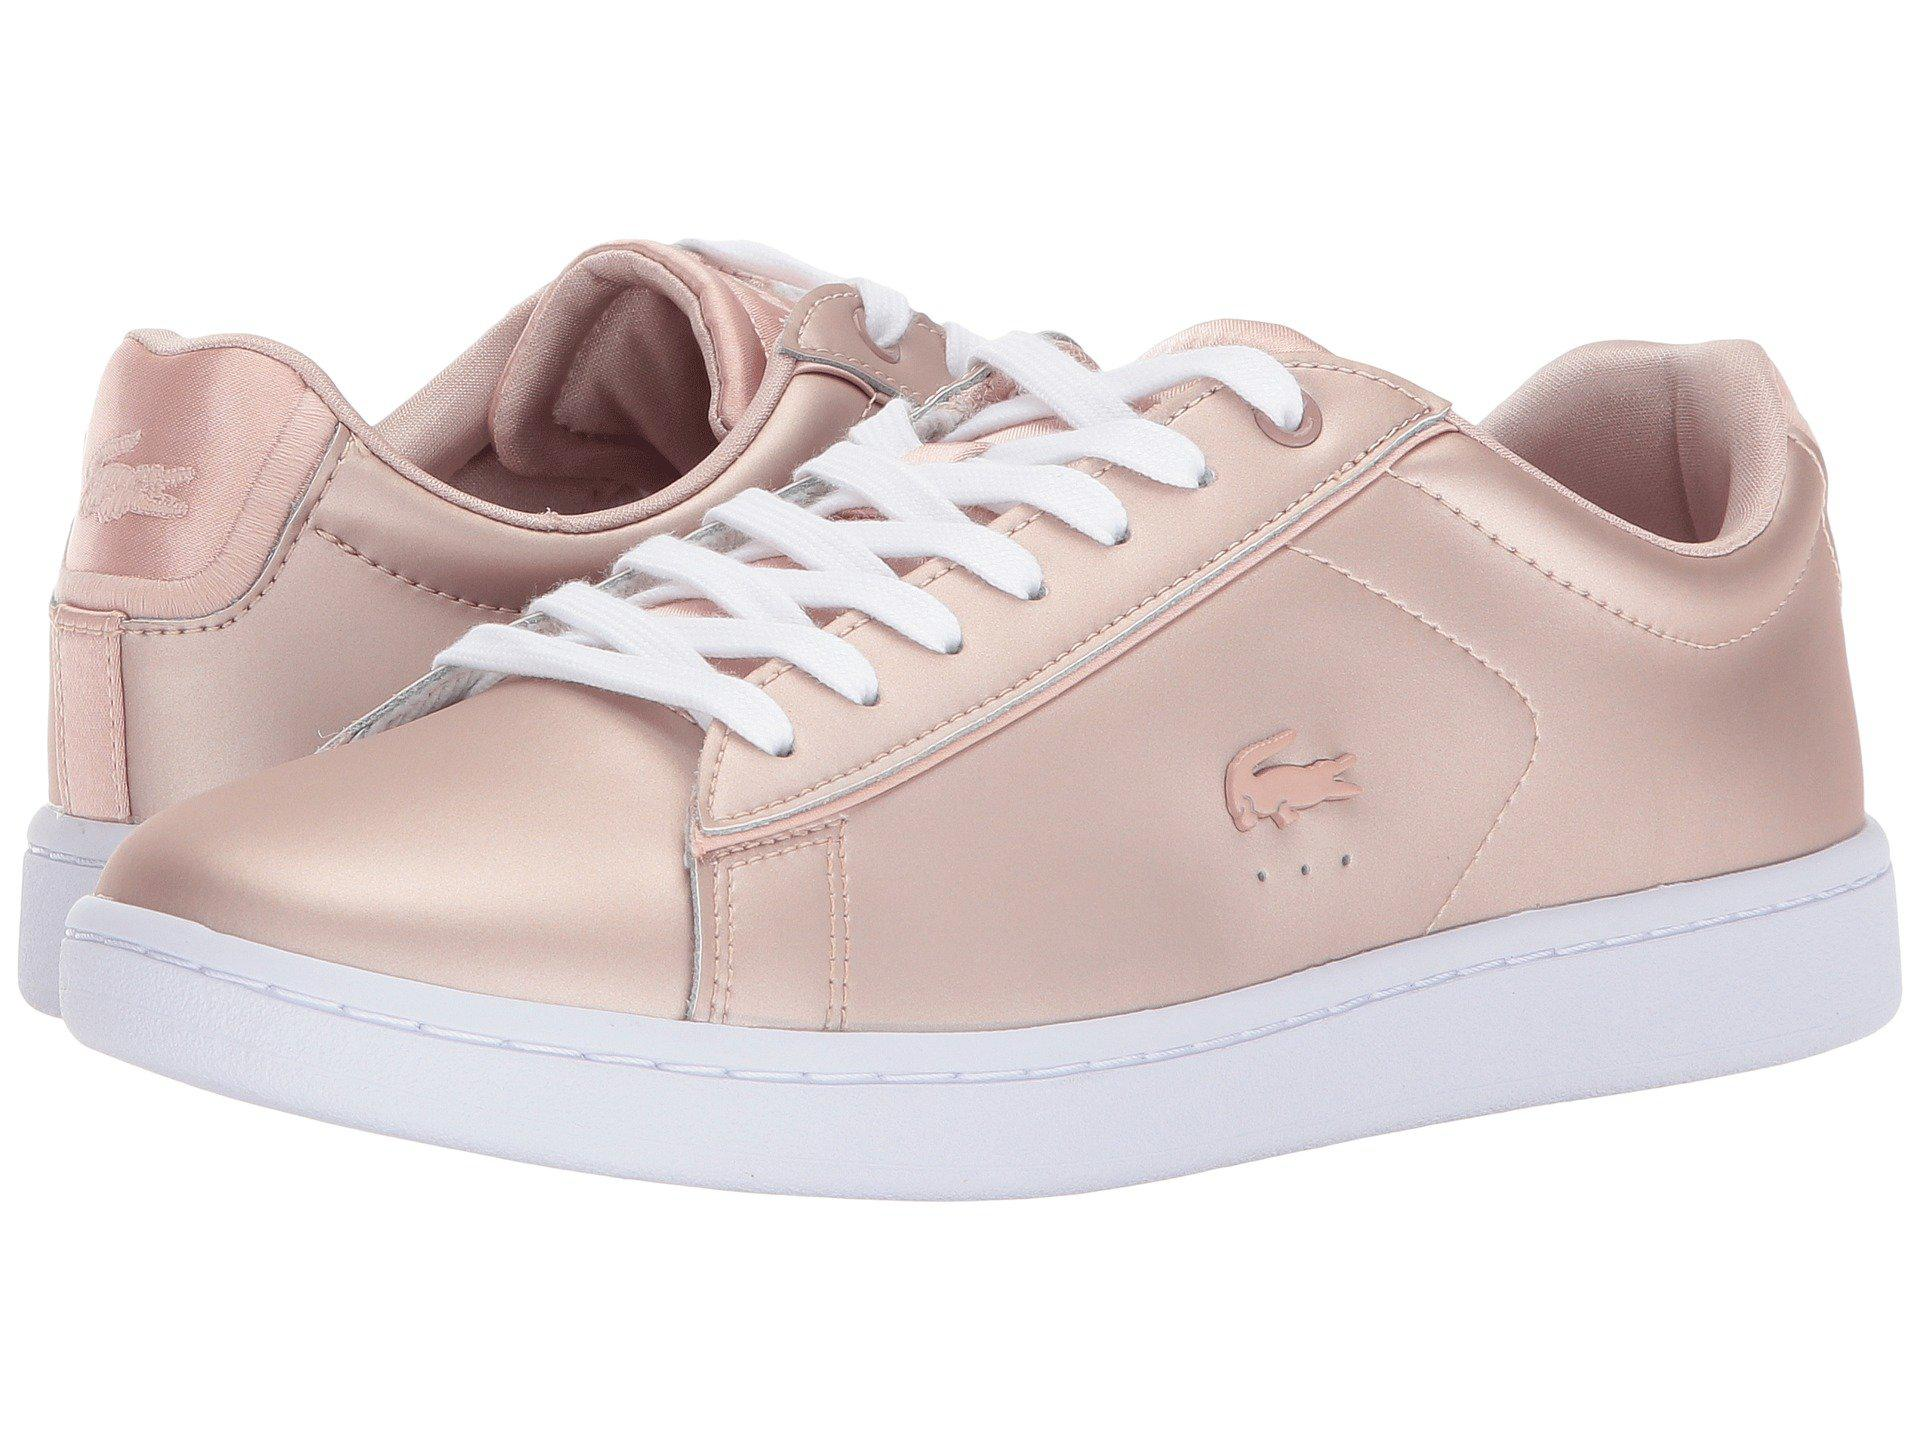 21fd77fb44d79 Lyst - Lacoste Carnaby Evo 118 7 in Pink - Save 34%